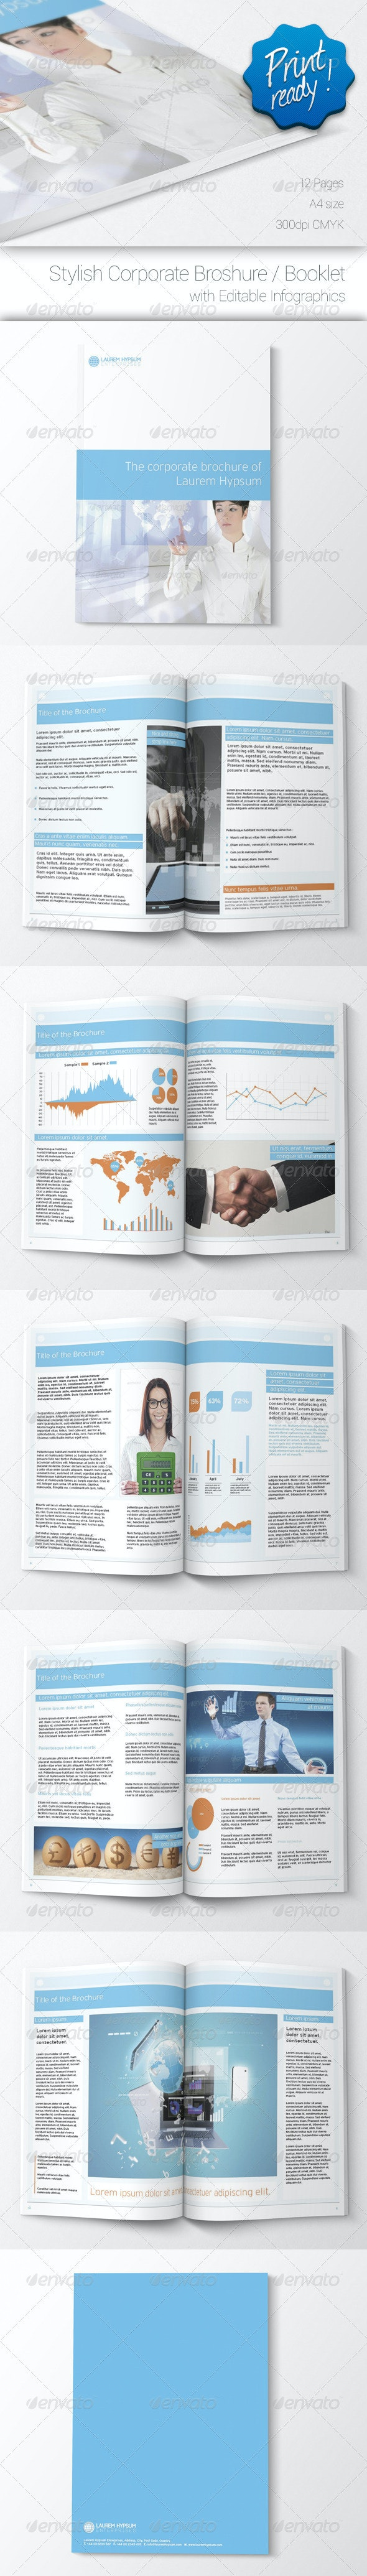 Corporate Brochure with Editable Infographics - Corporate Business Cards